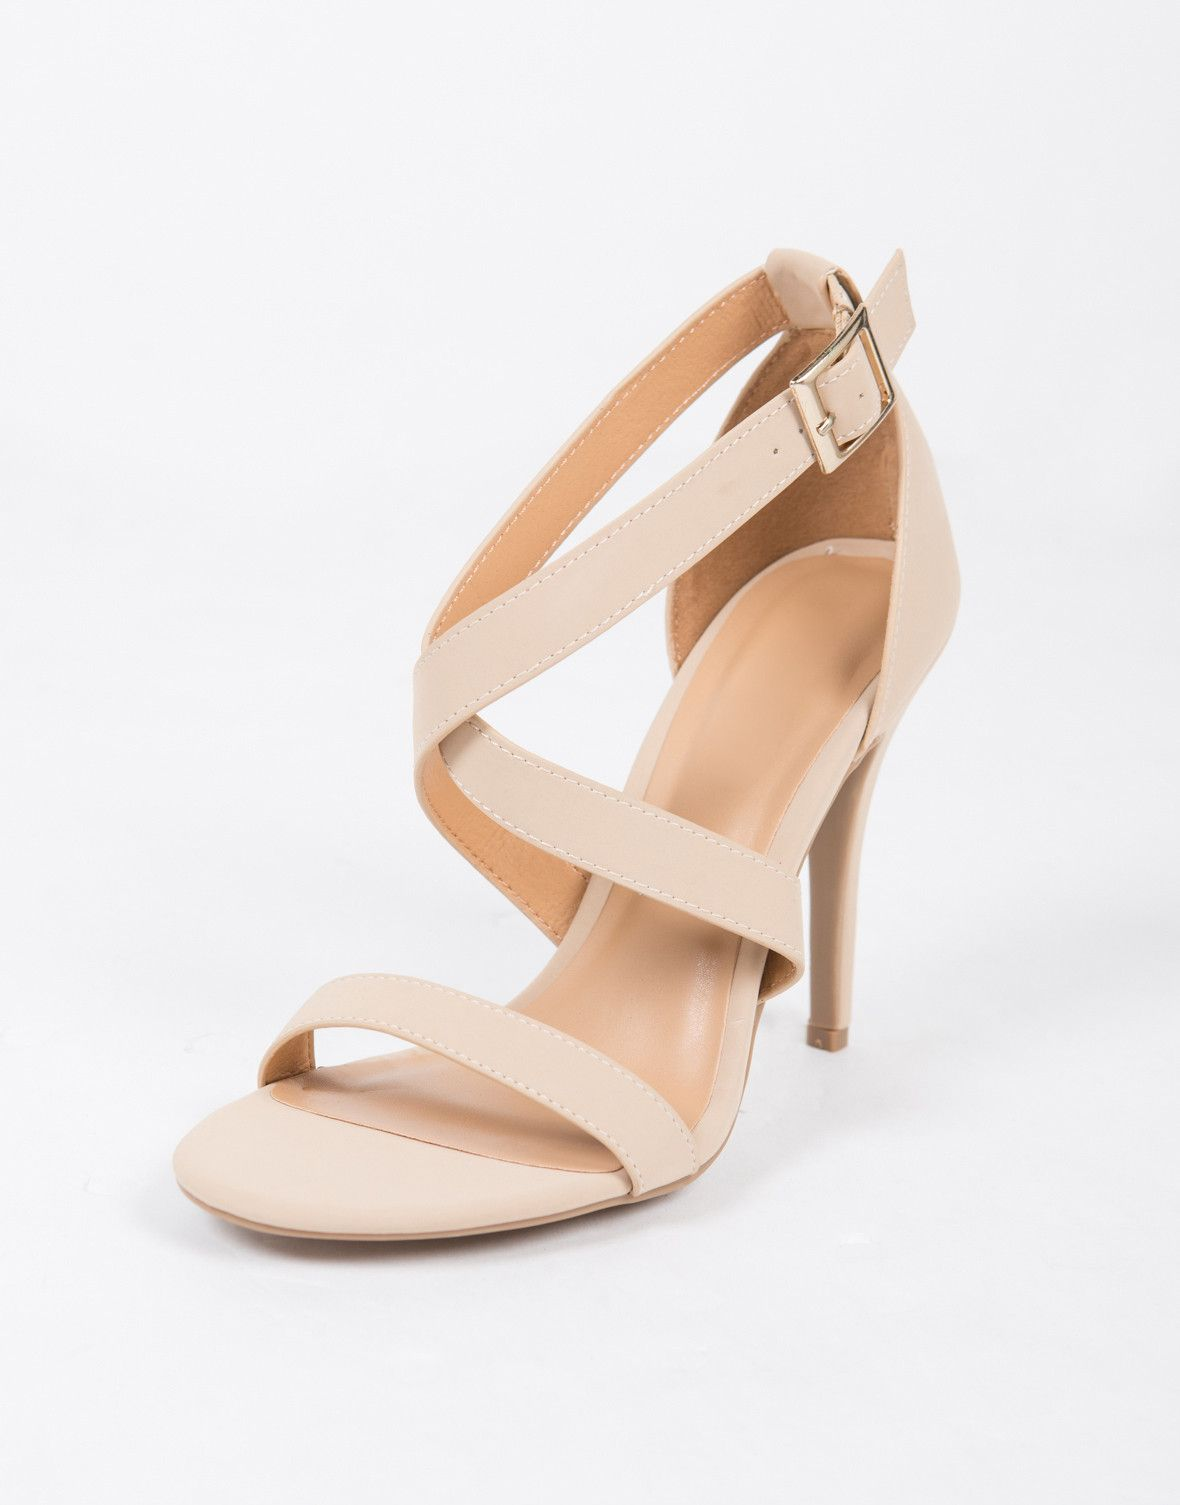 a6d8012e796 Criss Cross Strappy Heels | shoes and stuff | Strappy heels, Shoes ...